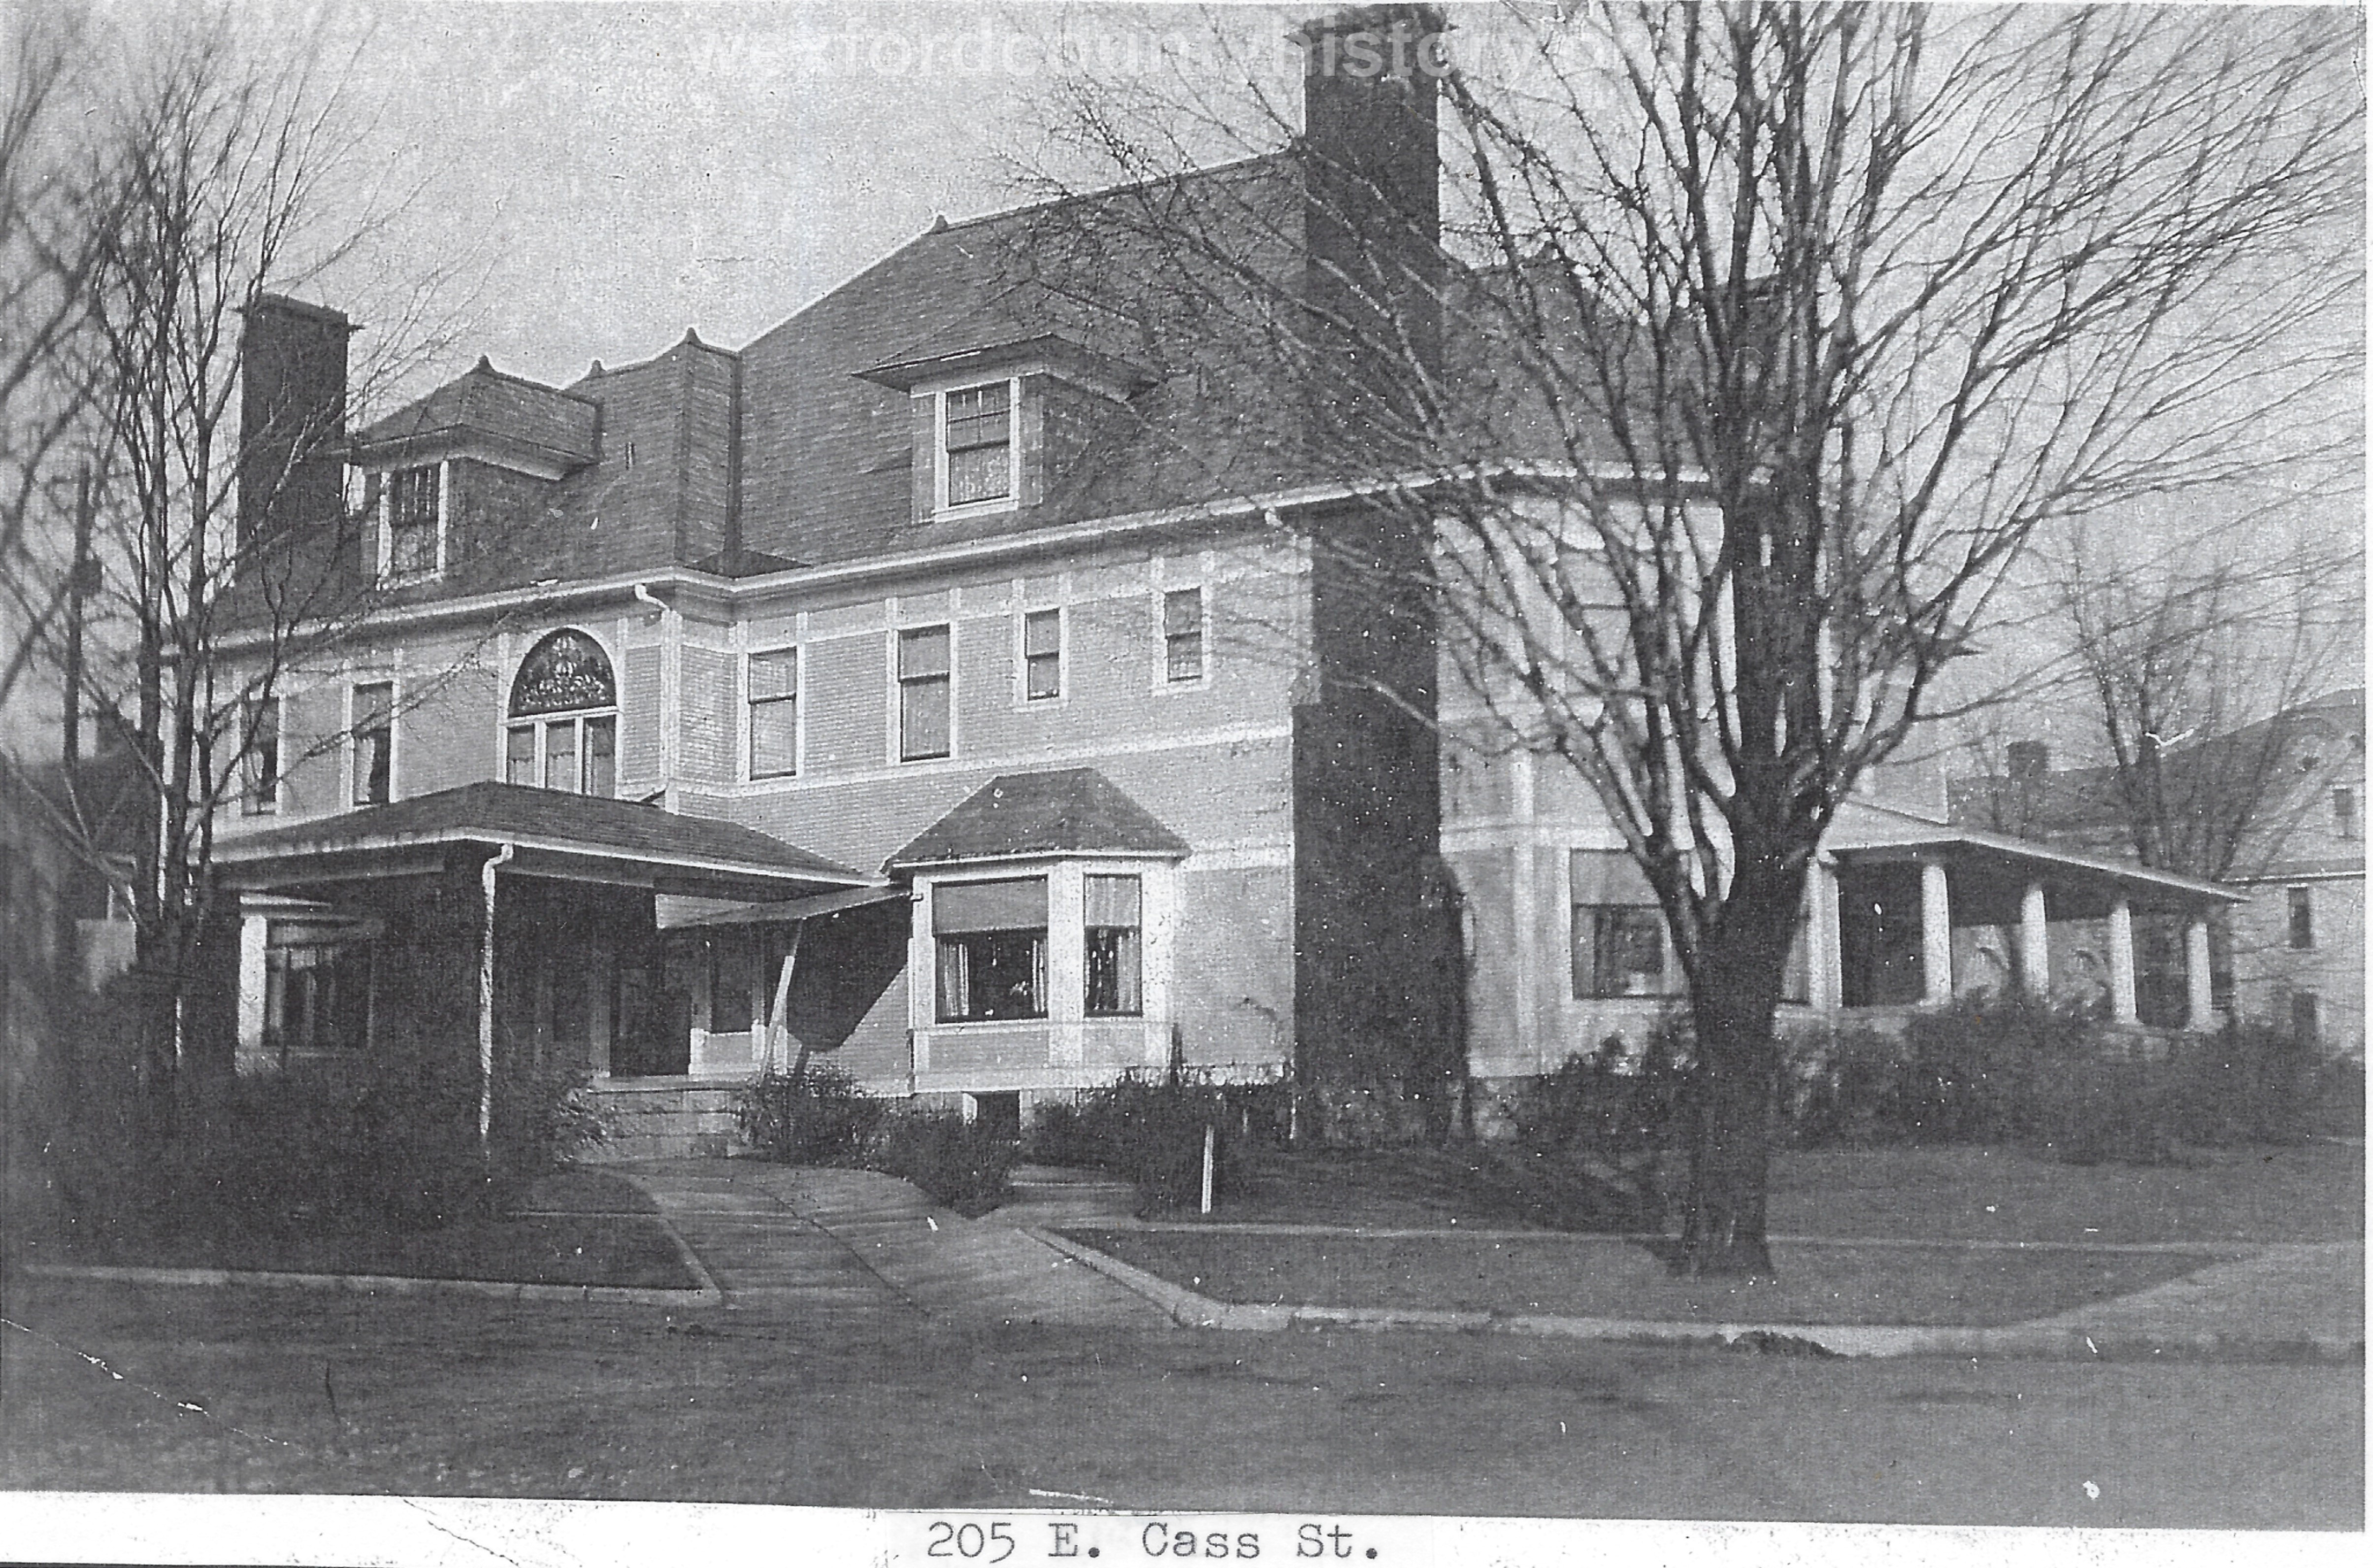 William W. Mitchell House - 205 East Cass